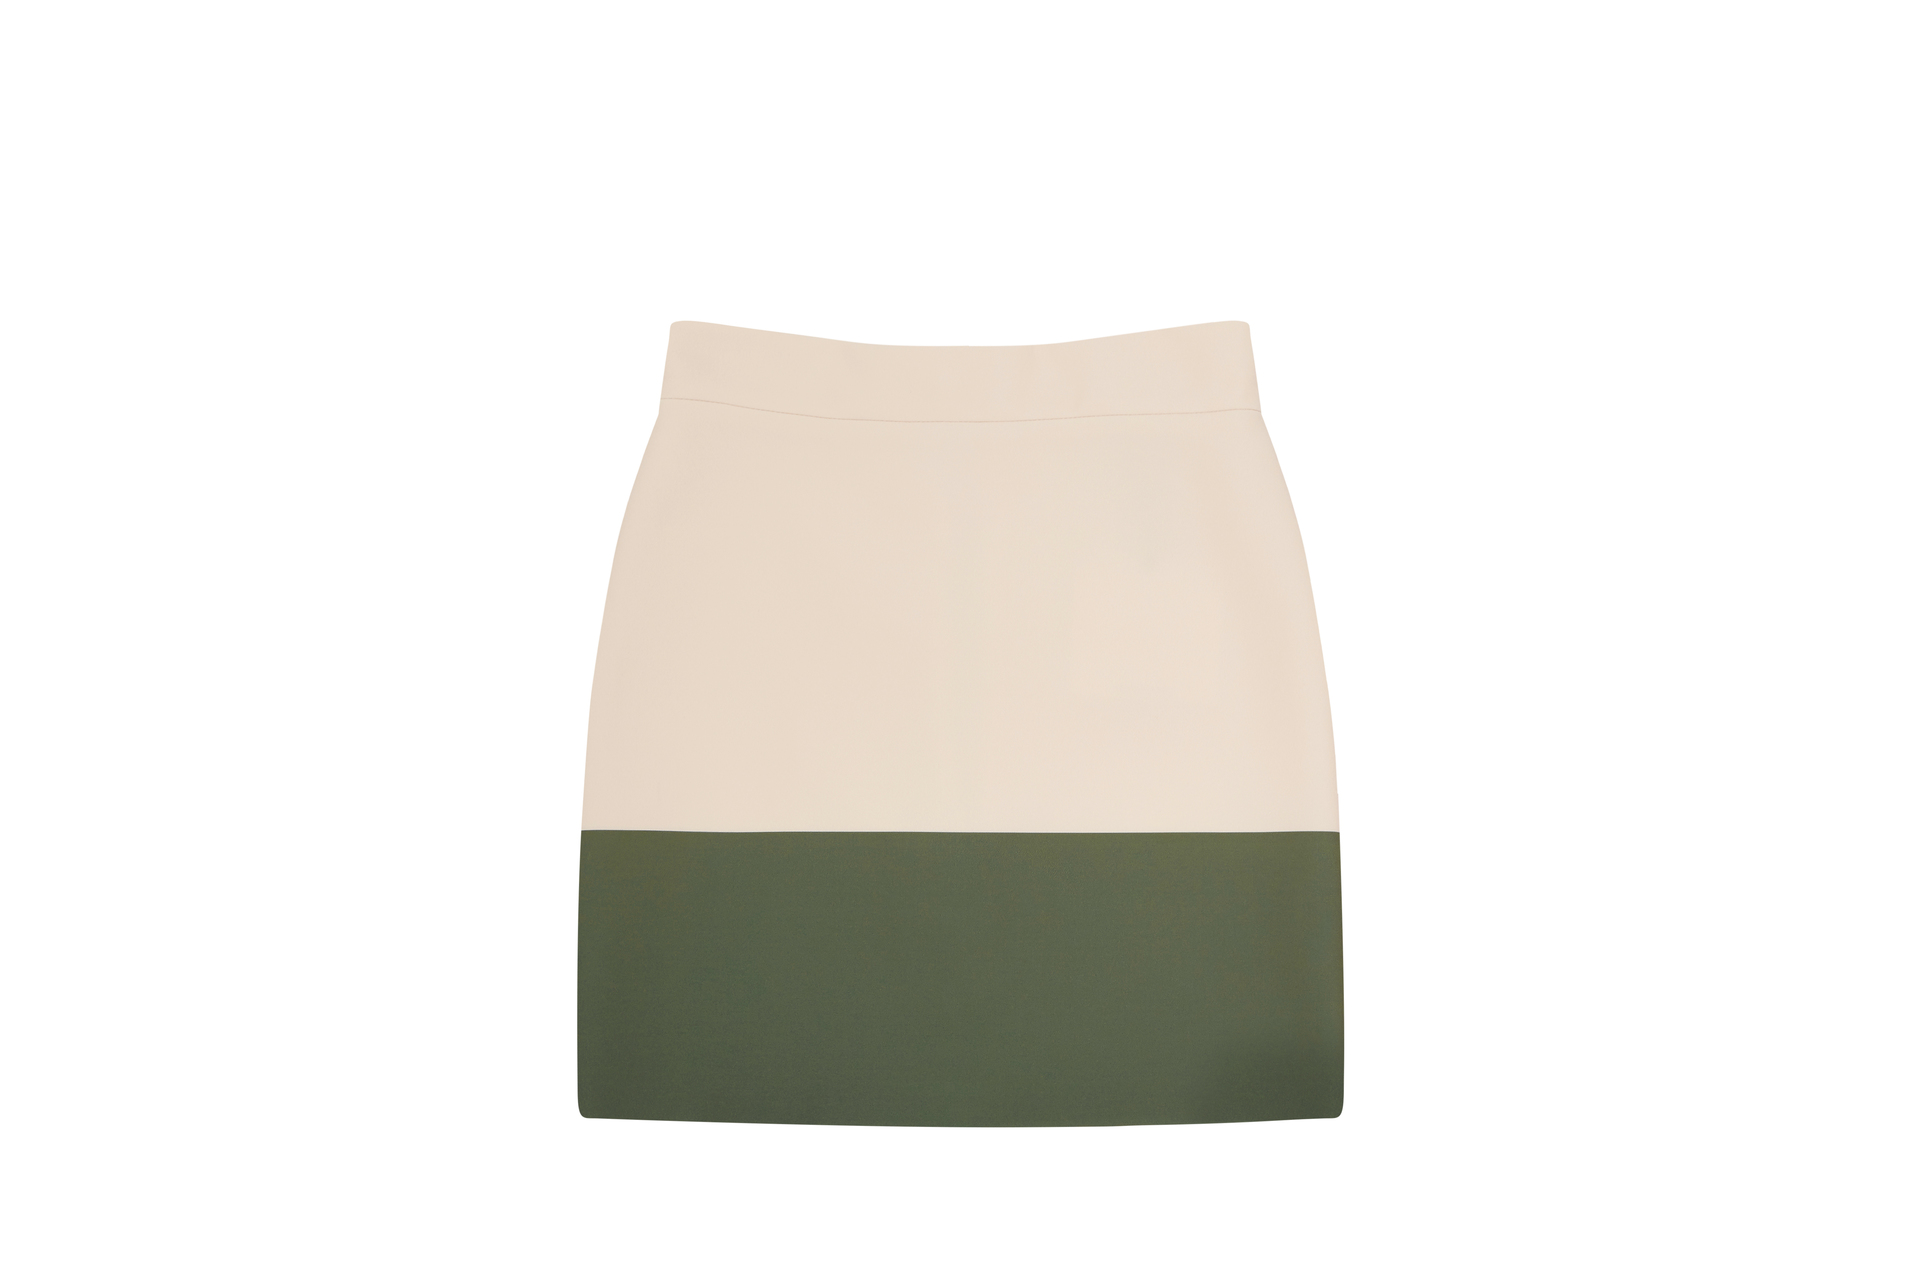 72dpi-2391969f00-30.-BY-JOHNNY,-Bold-Colour-Mini-Skirt-Peach-Green,-250,-www.byjohnny.com.au